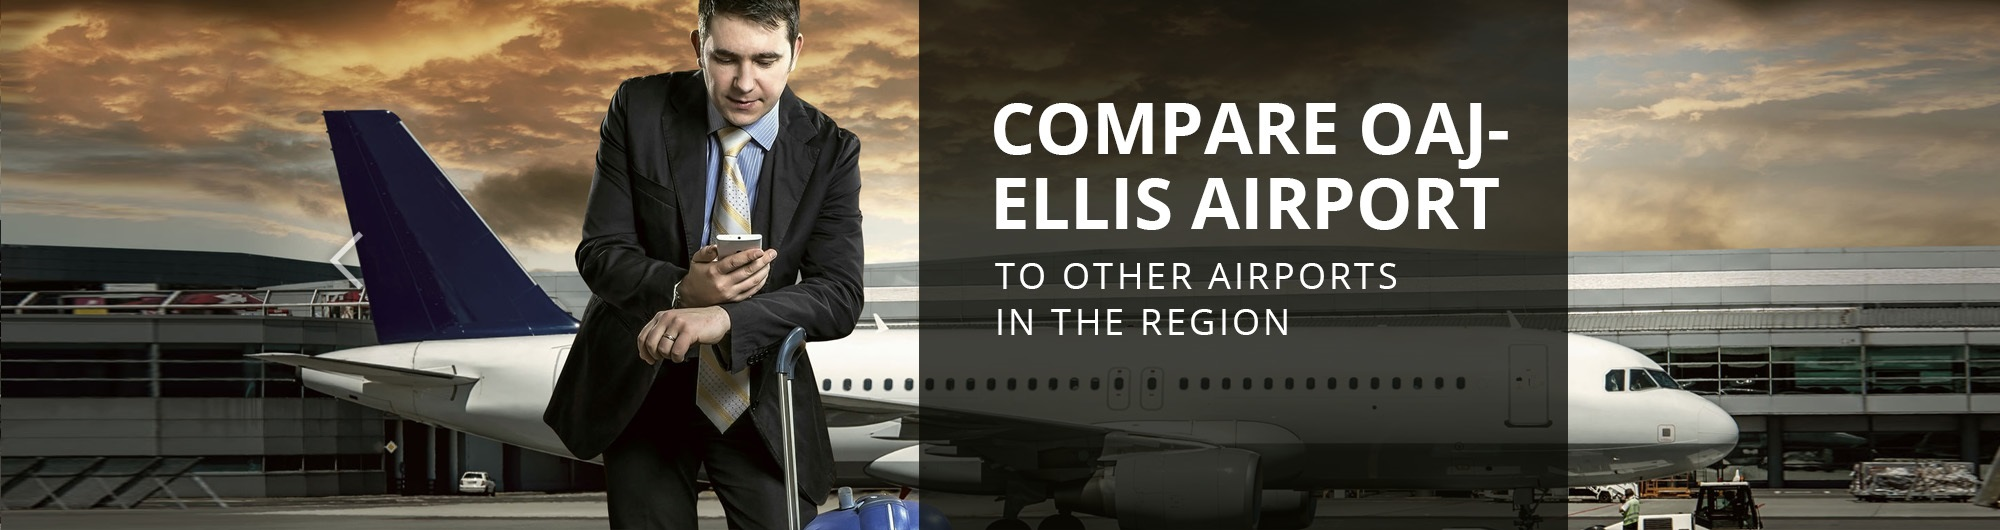 Compare OAJ-Ellis Airport